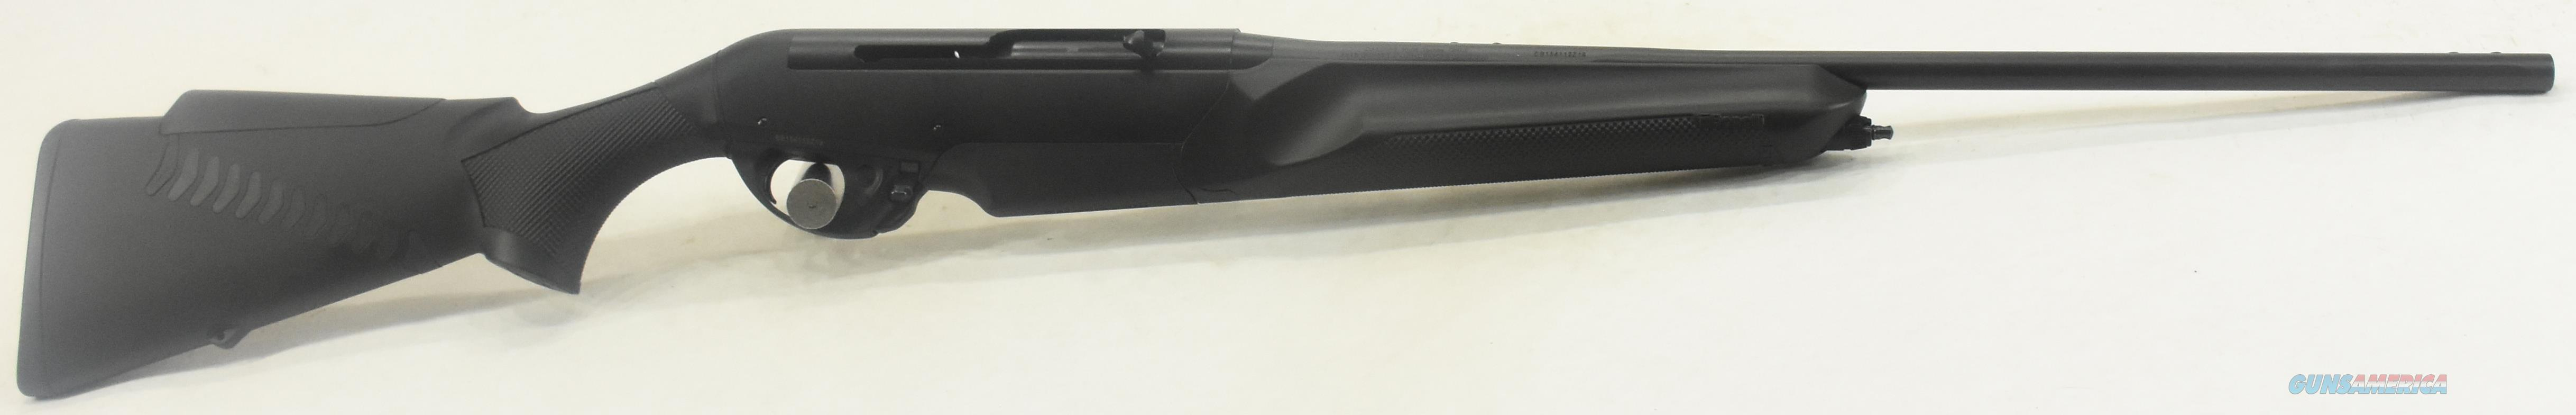 11771 Benelli R1 Big Game Rifle All Black 30-06 Spf 22In  Guns > Rifles > Benelli Rifles